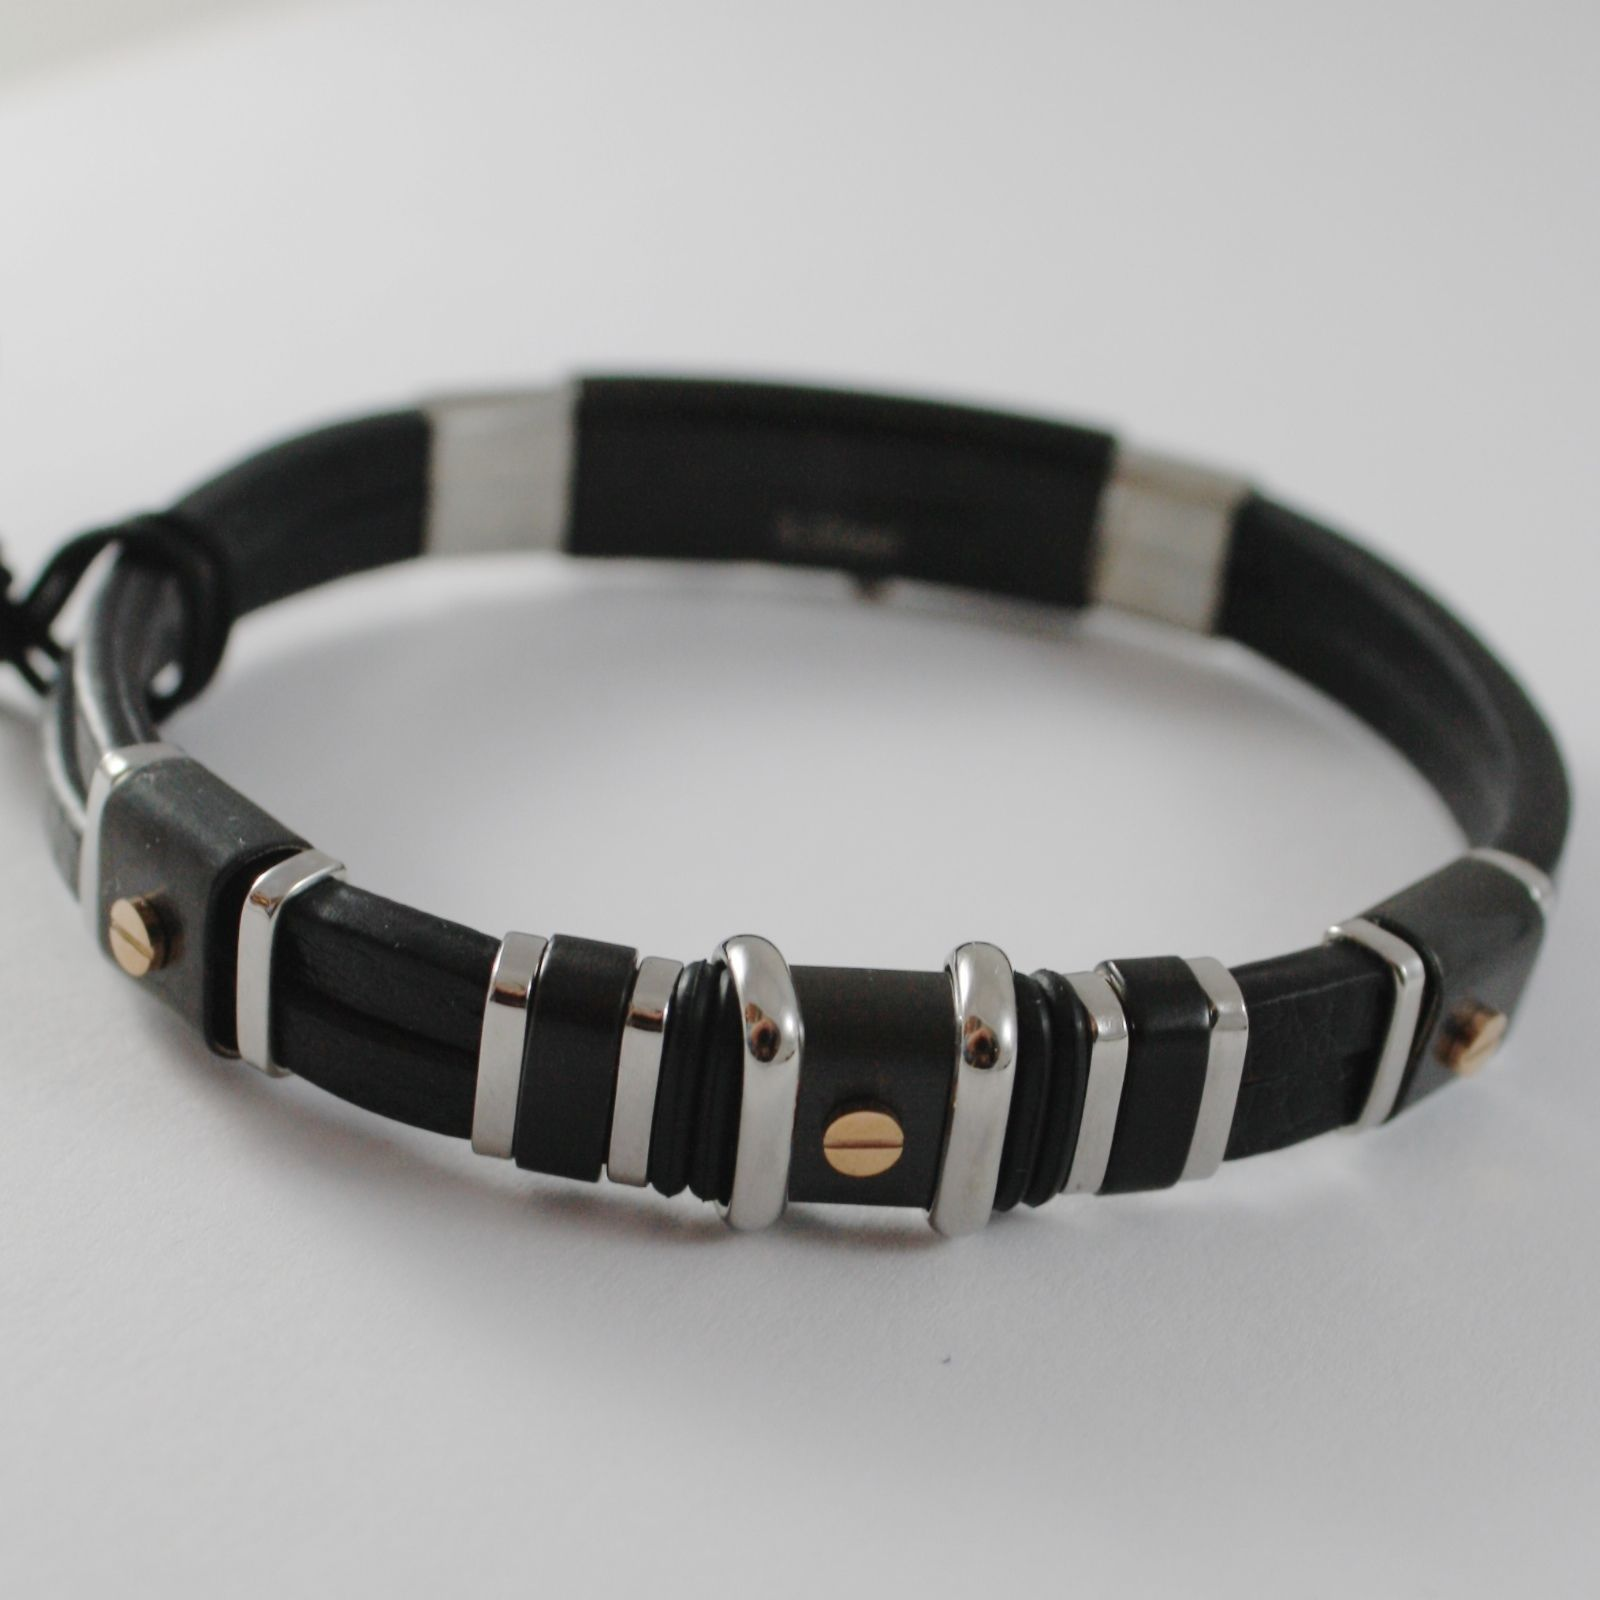 STAINLESS BLACK WHITE & ROSE STEEL BRACELET AND LEATHER, 4US BY CESARE PACIOTTI